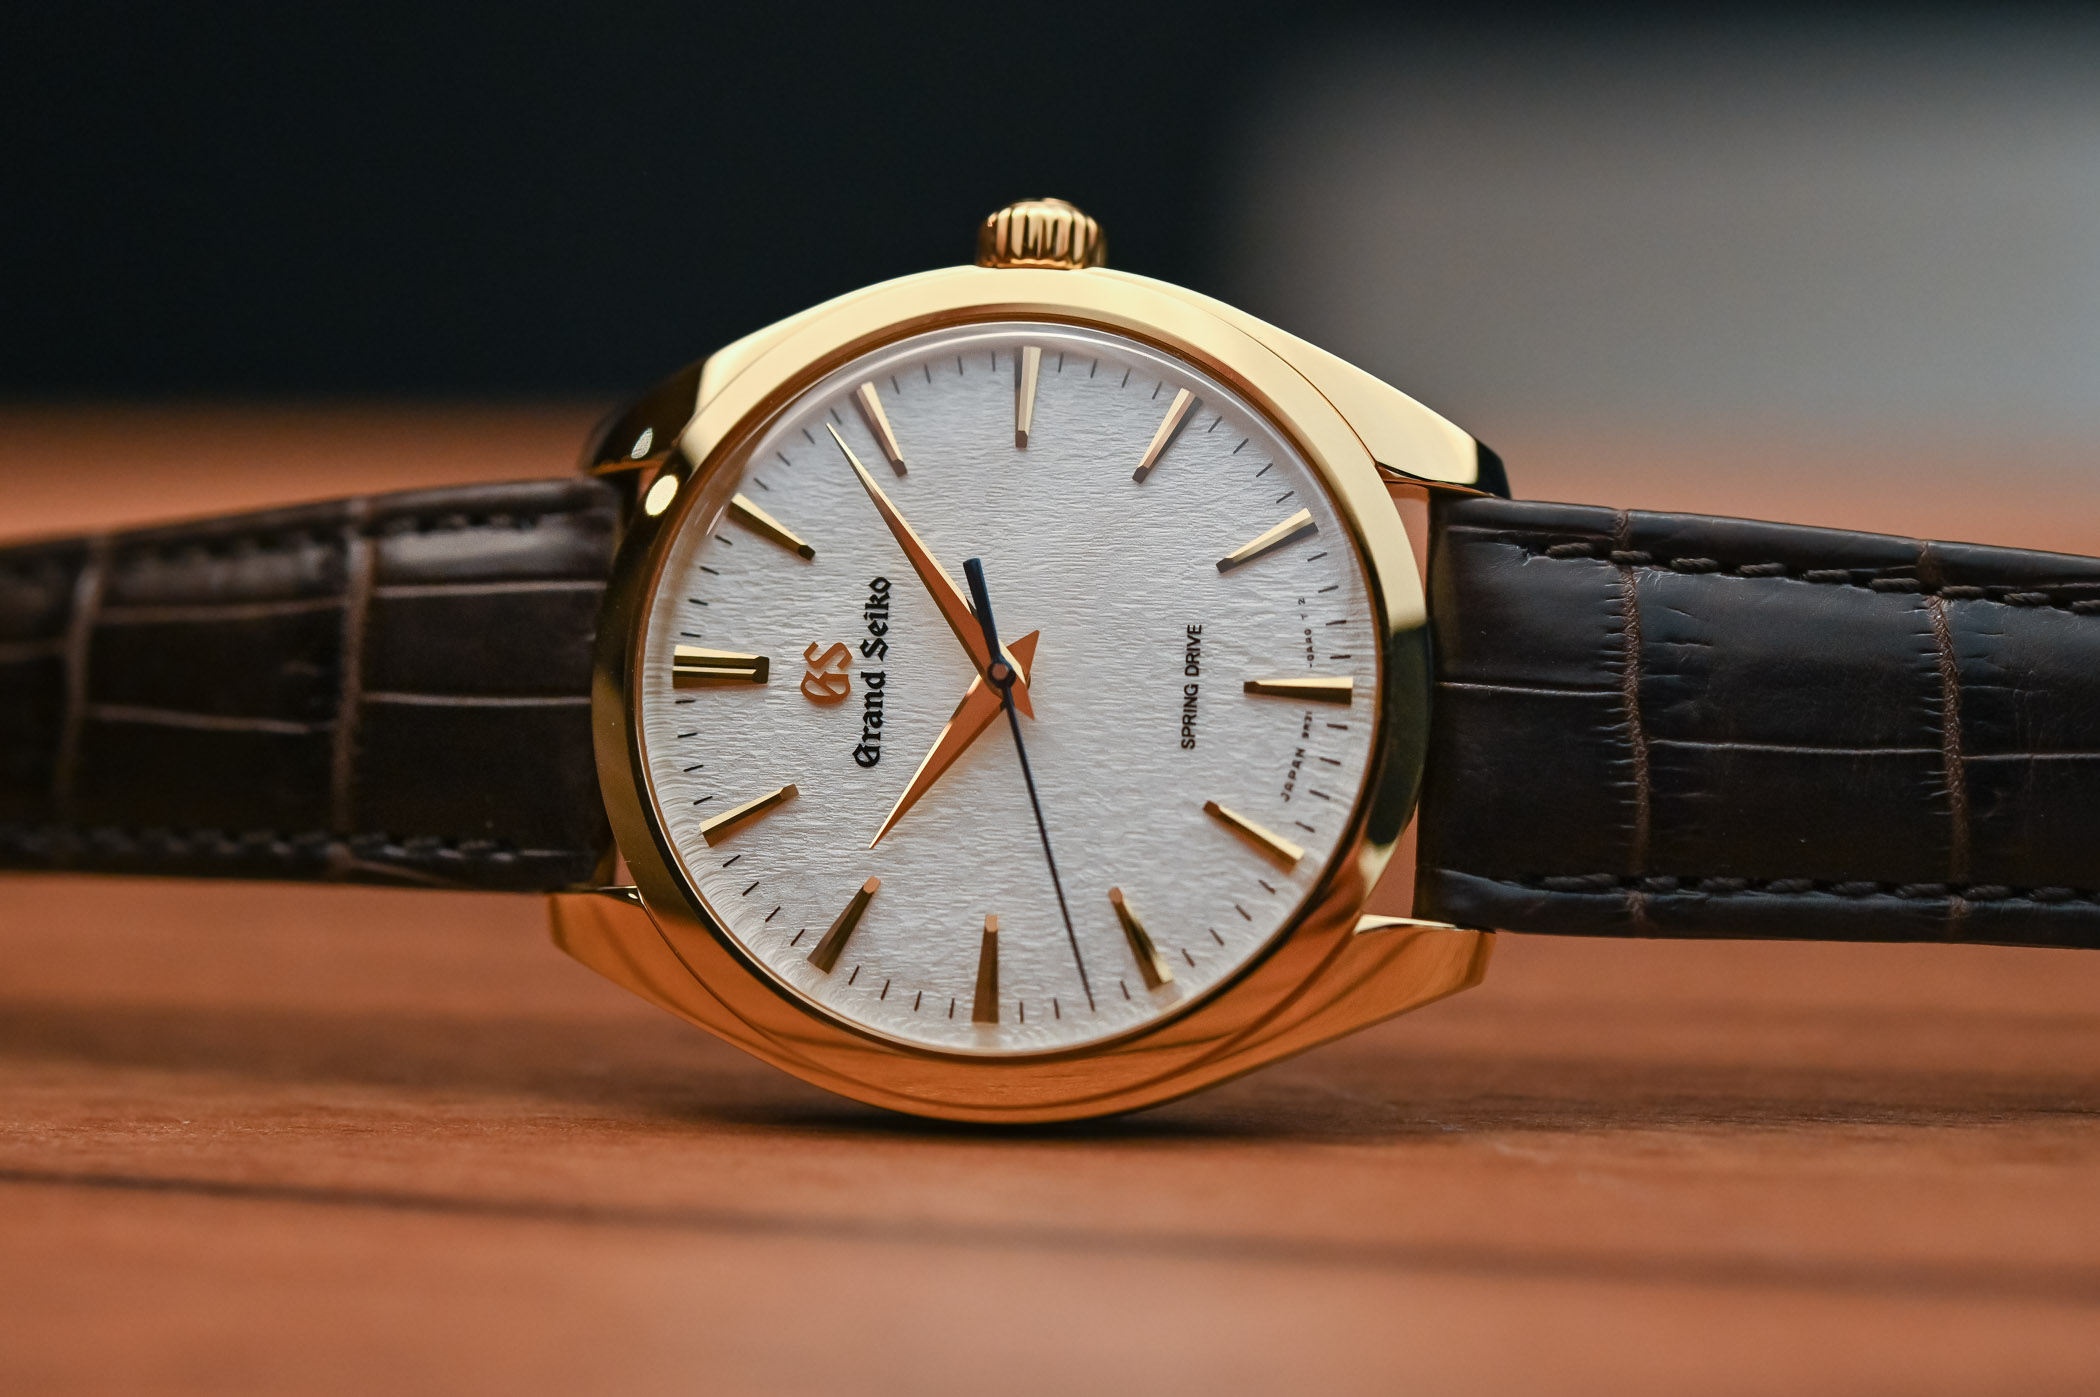 Grand Seiko Hand-Wound Spring Drive Collection - SBGY002 SBGY003 SBGZ002 SBGZ003 - 6